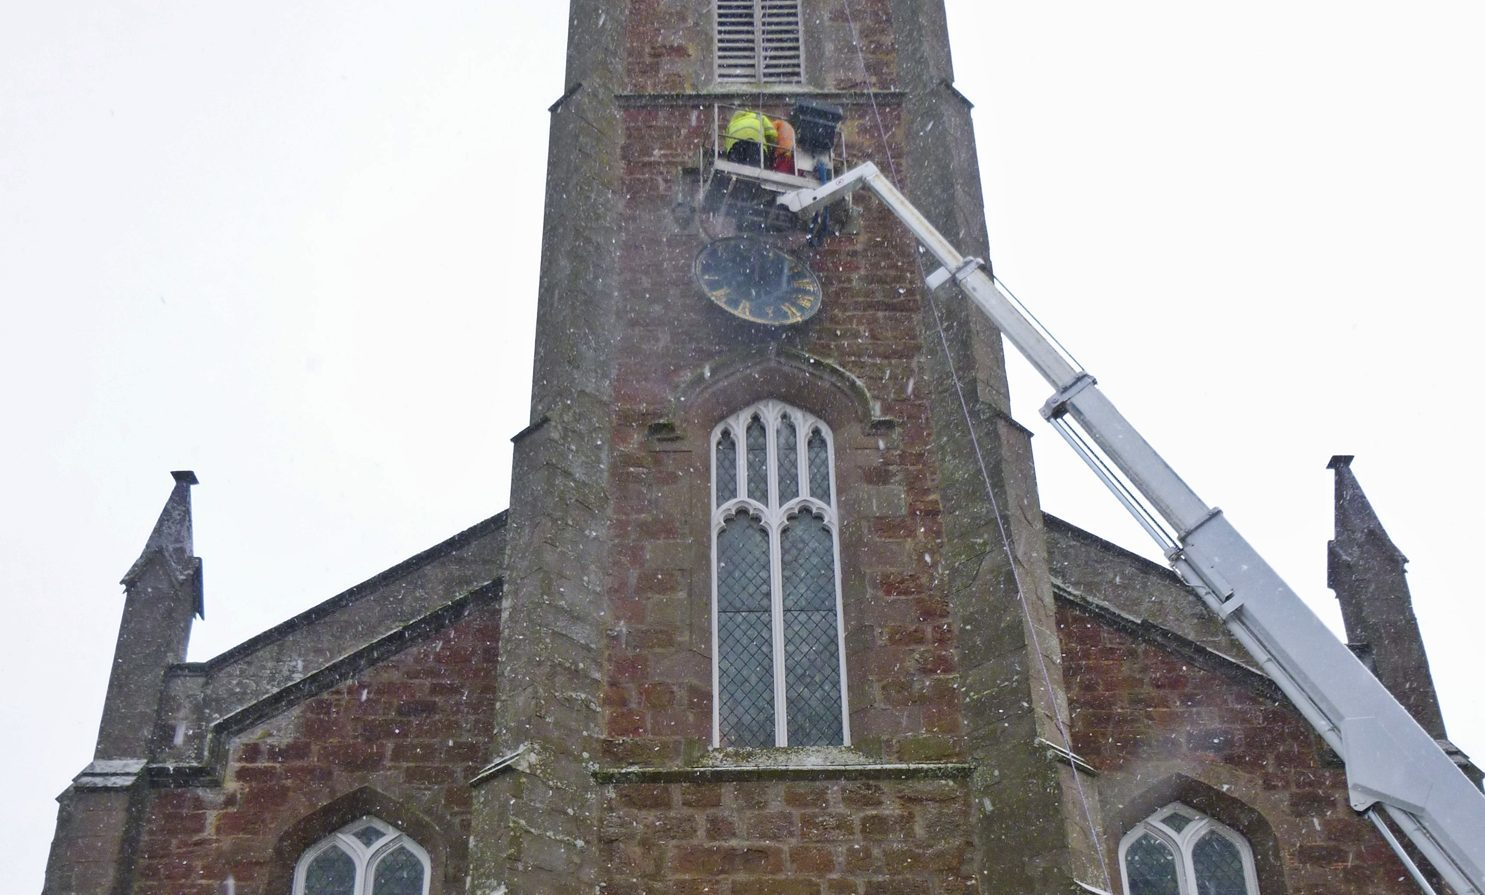 The clock undergoing maintenance.